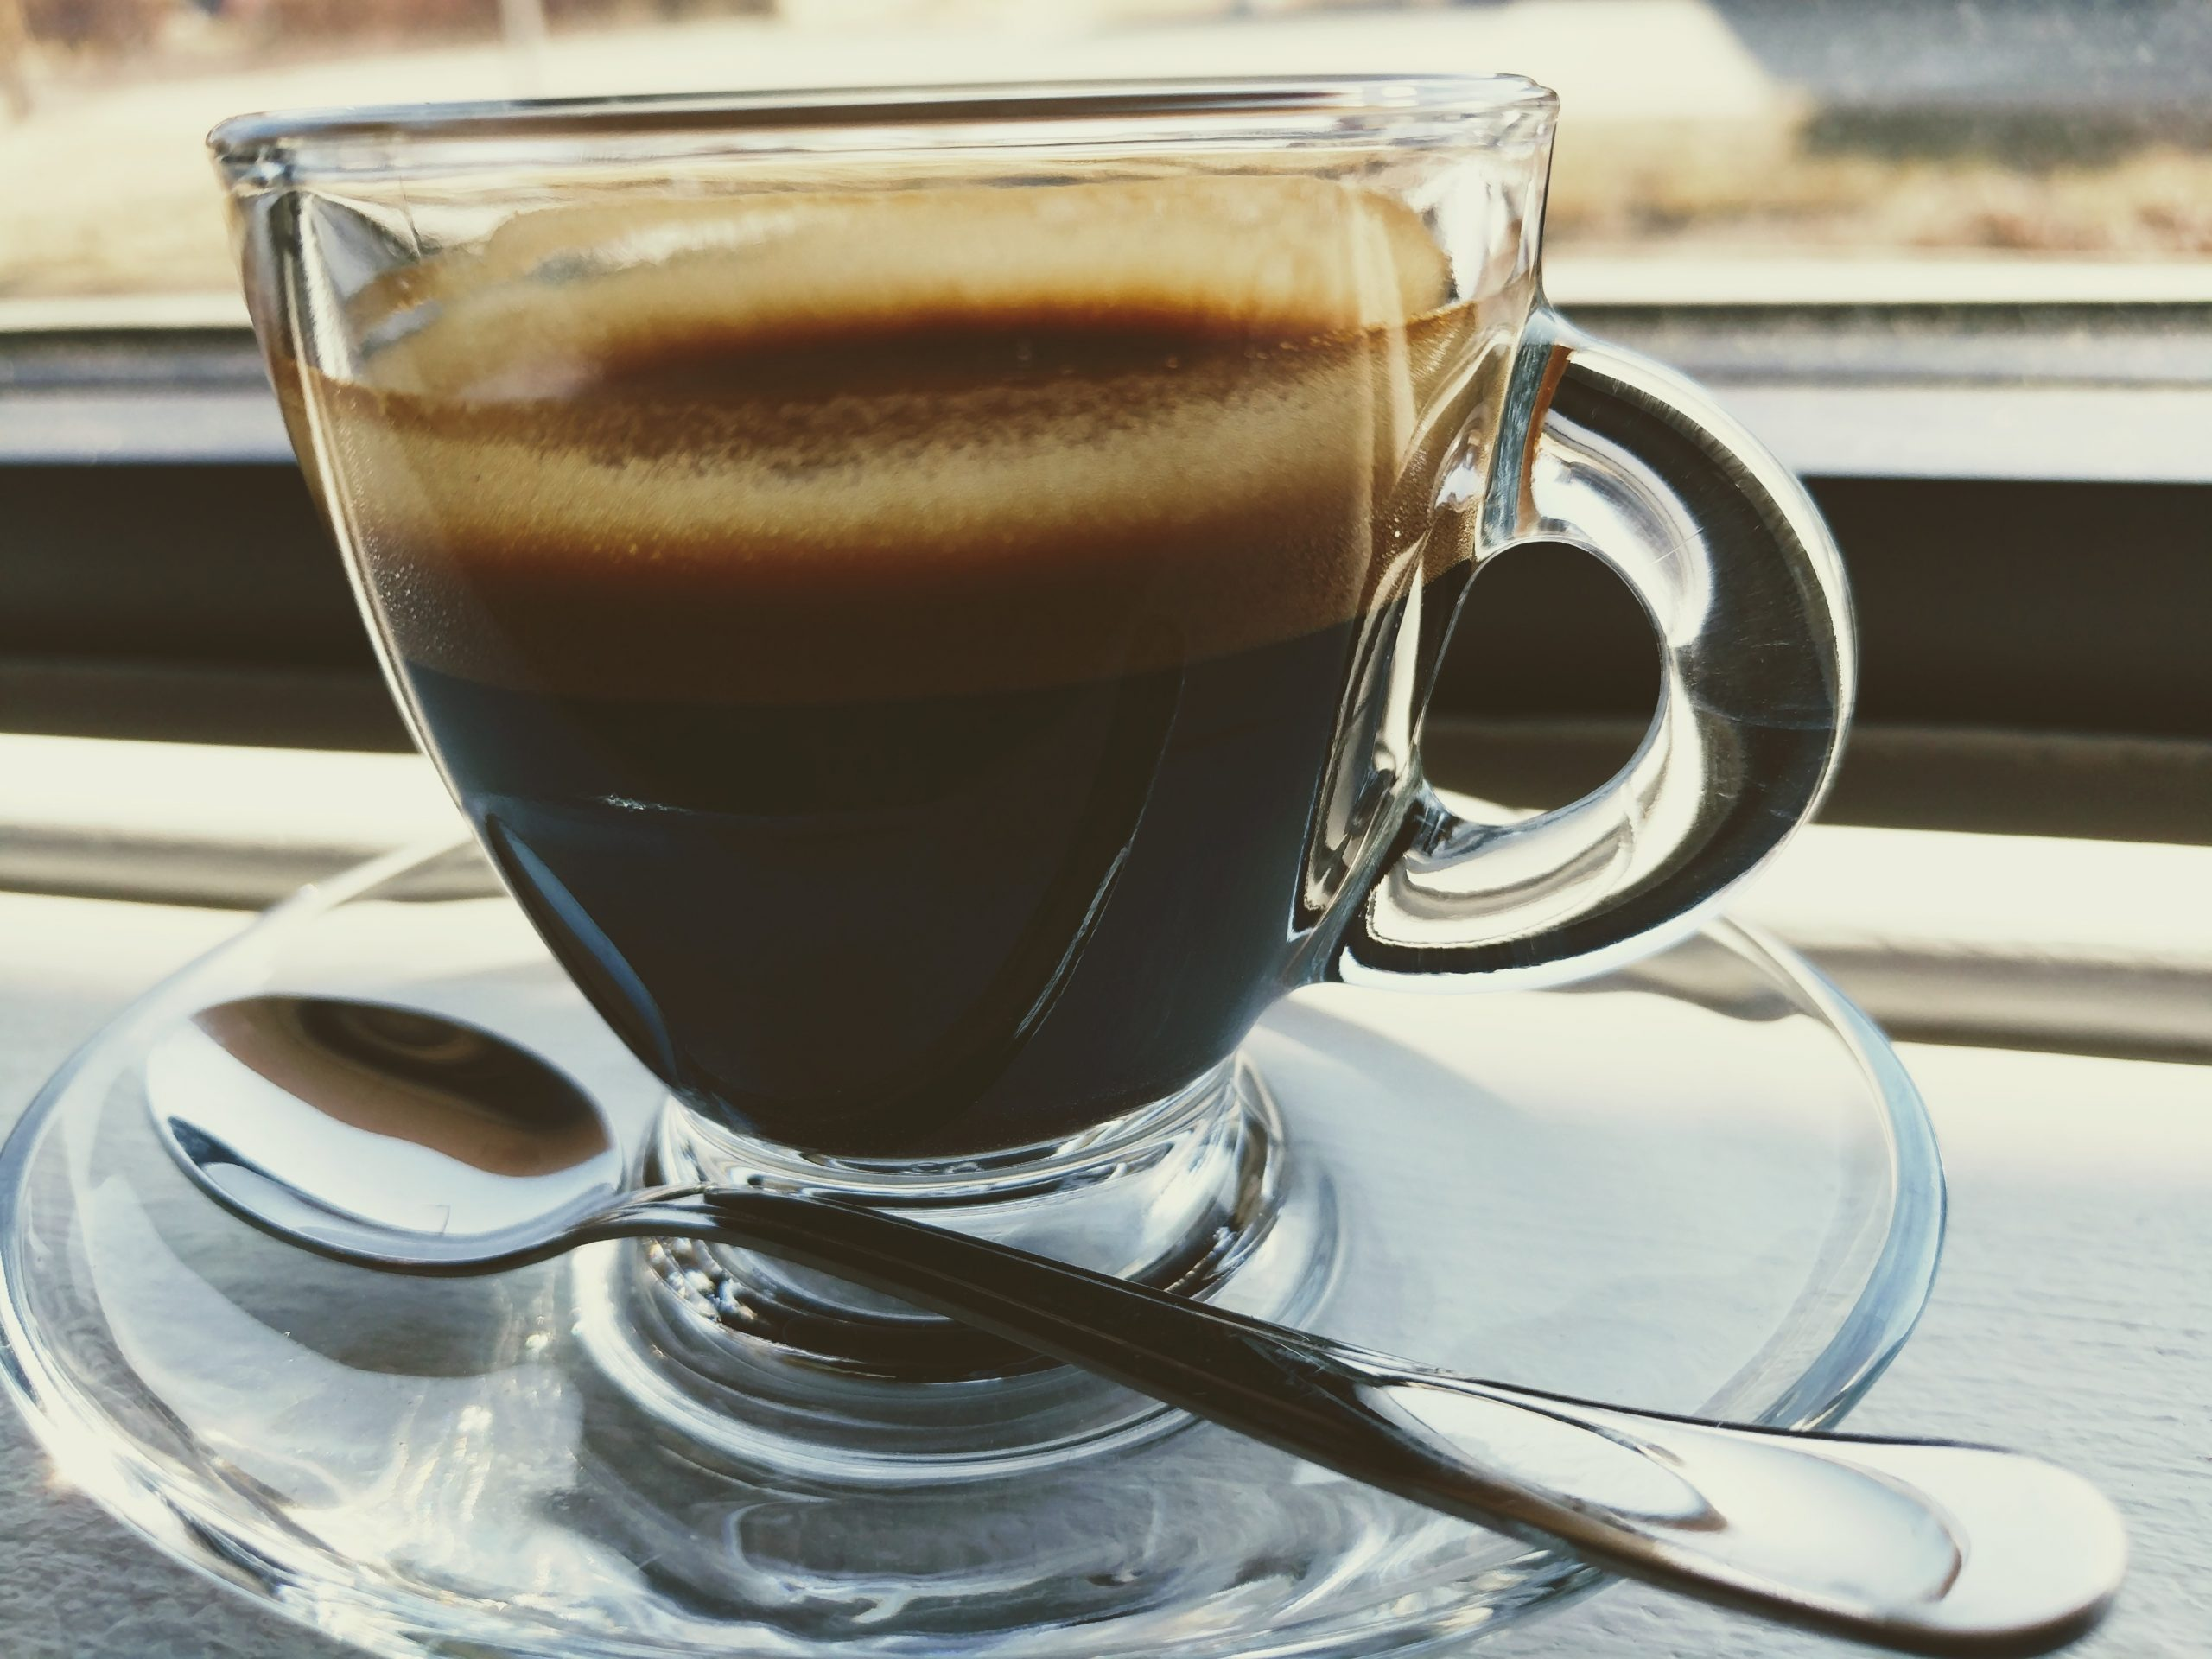 Cup of espresso with spoon and saucer